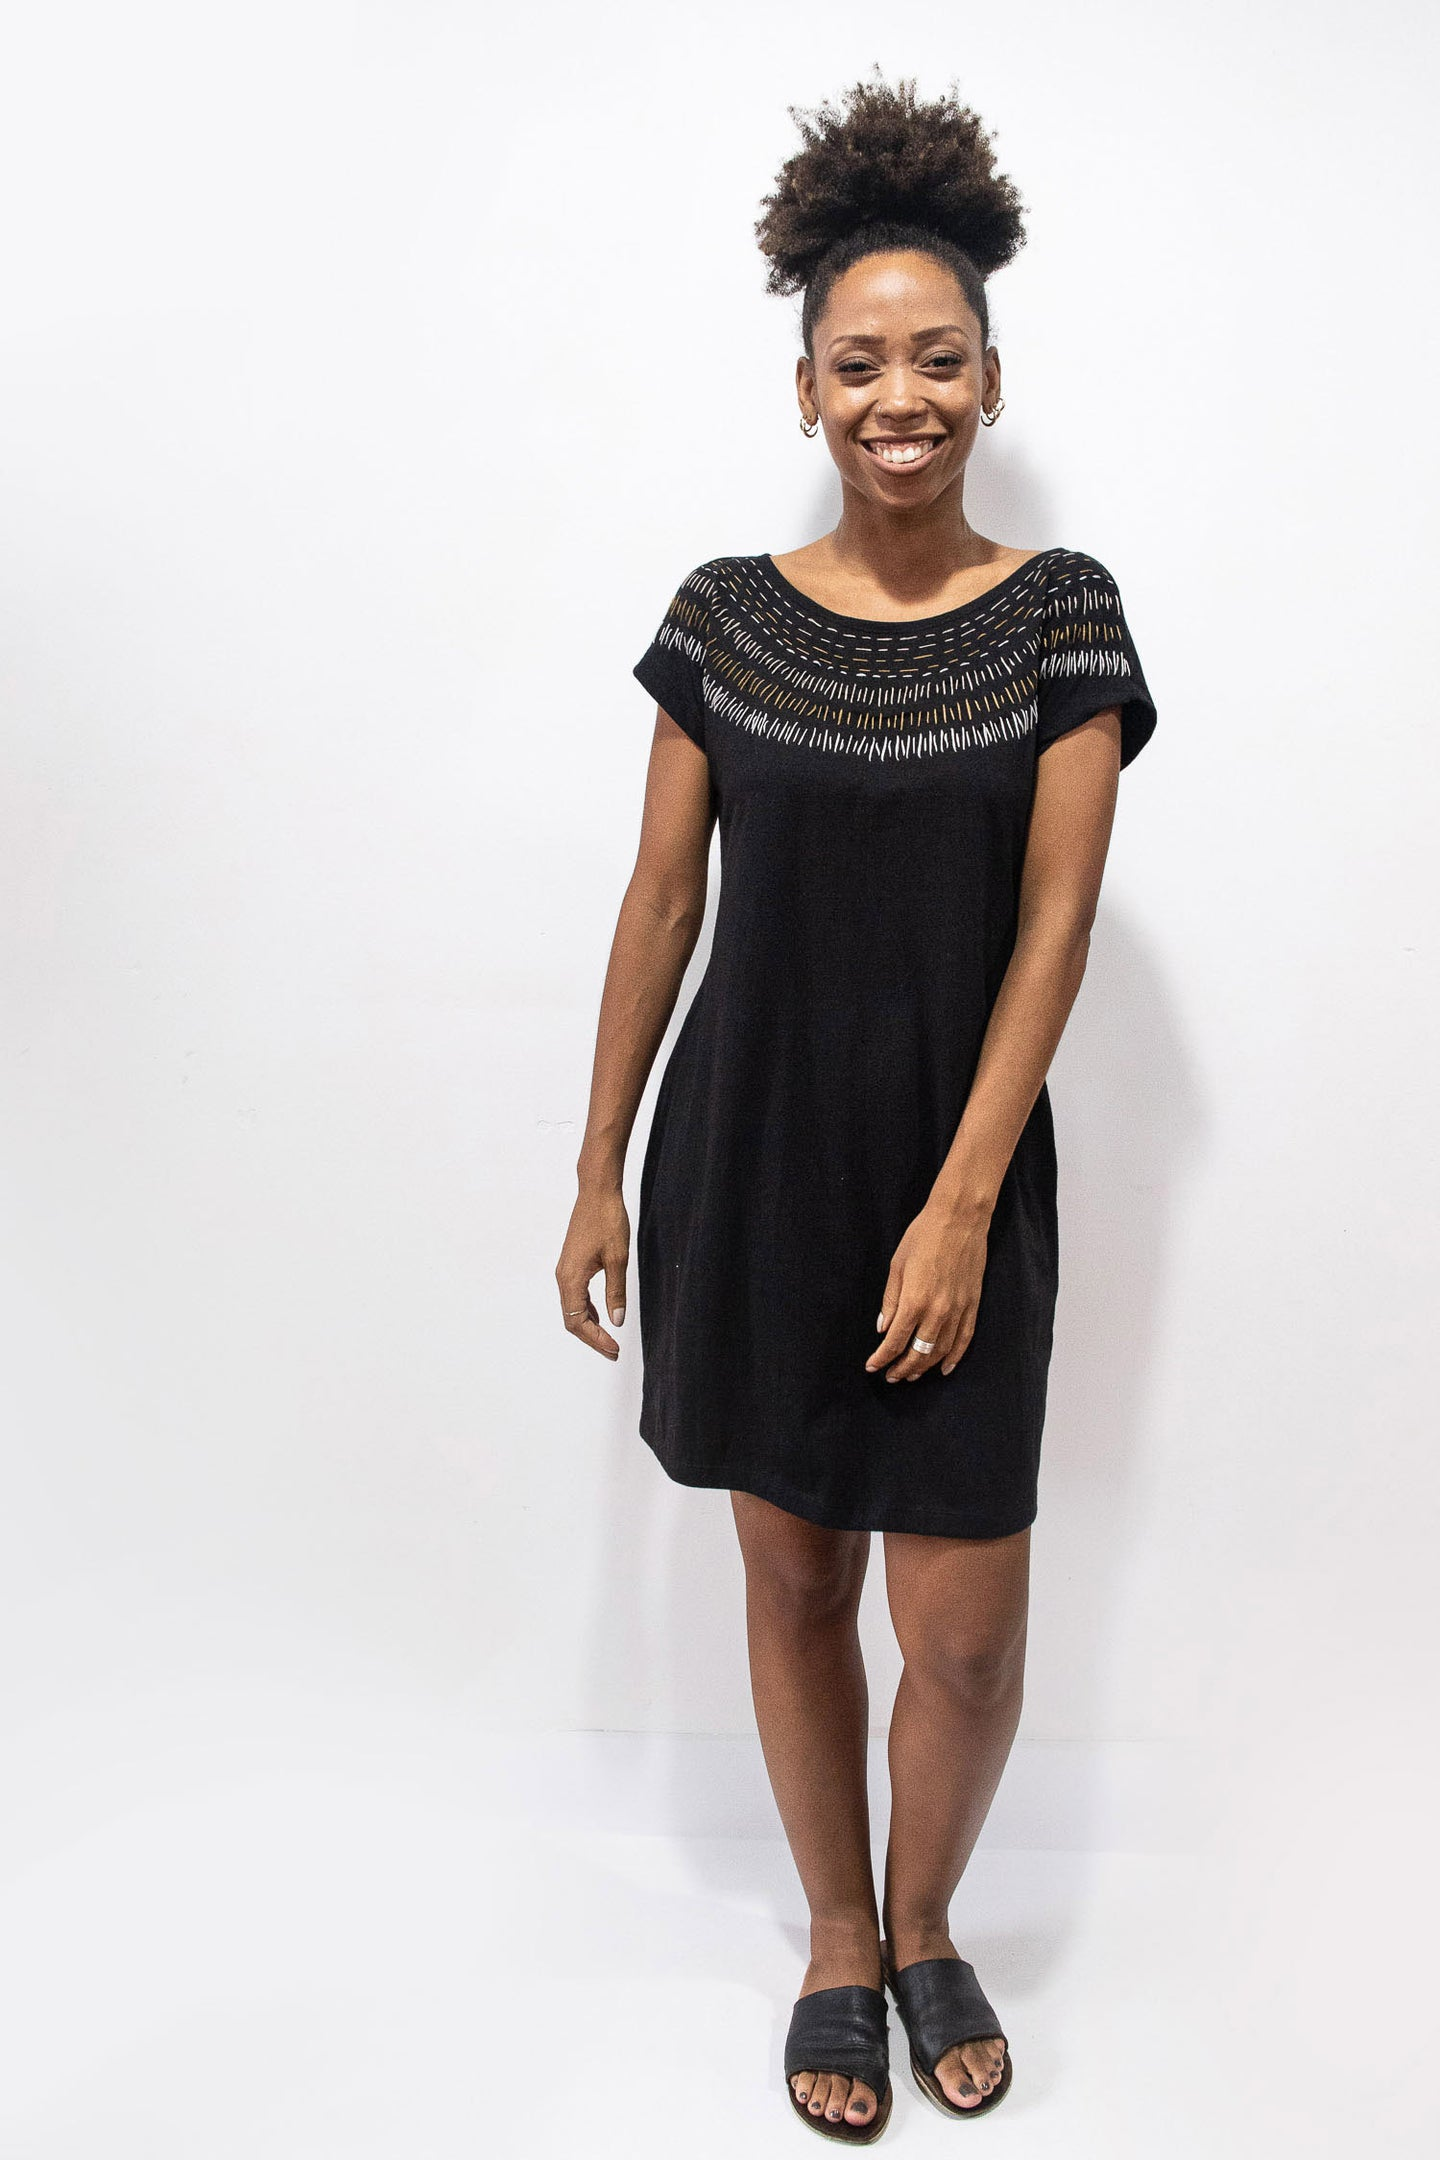 Tonle | T-Shirt Dress in Black w/ Sunburst Embroidery